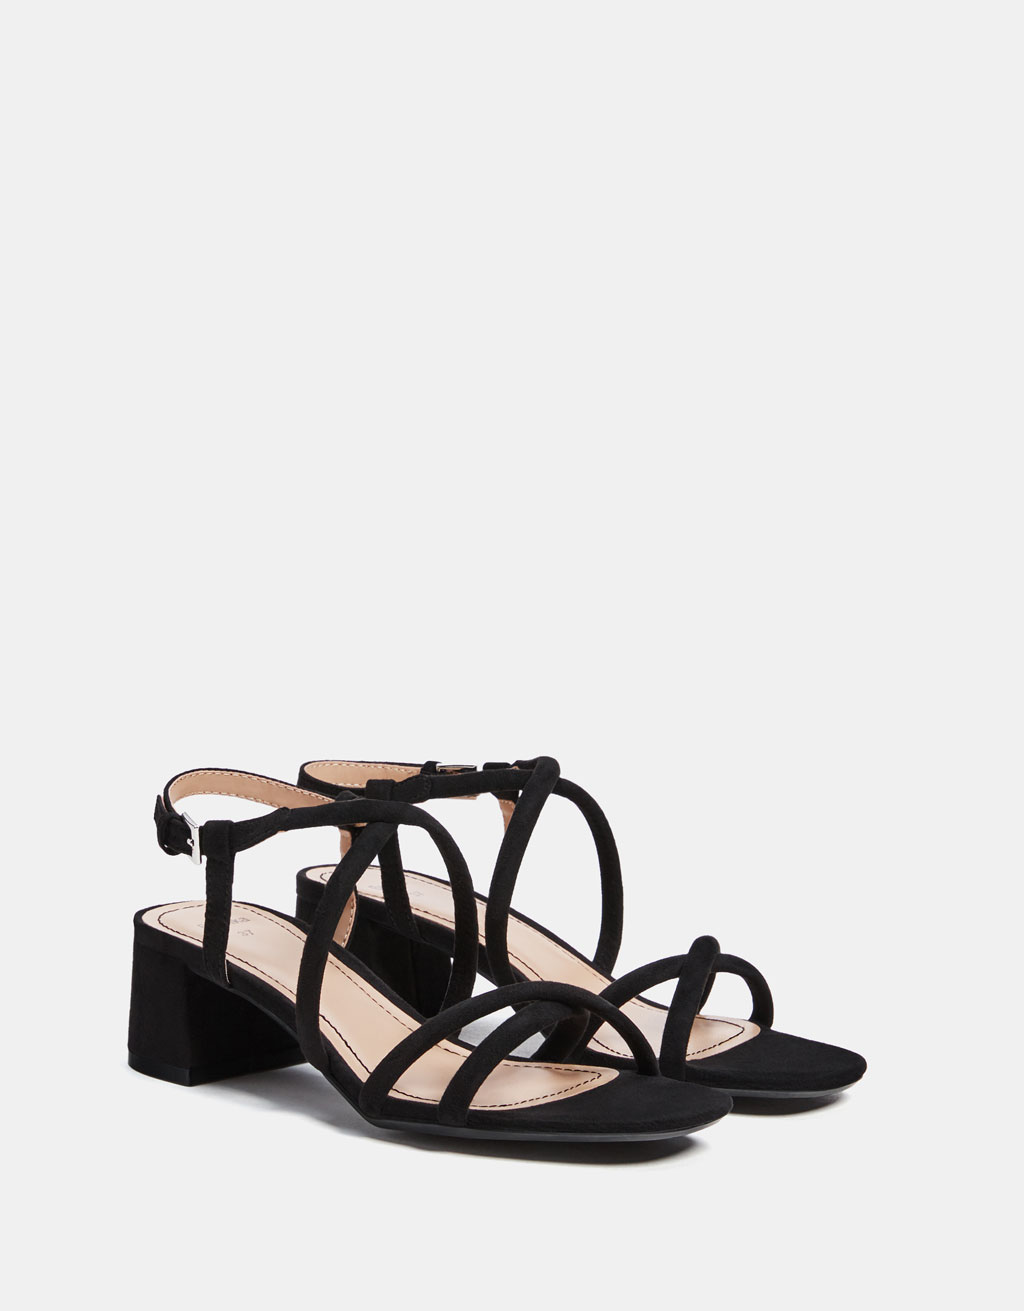 Sandals with tubular straps